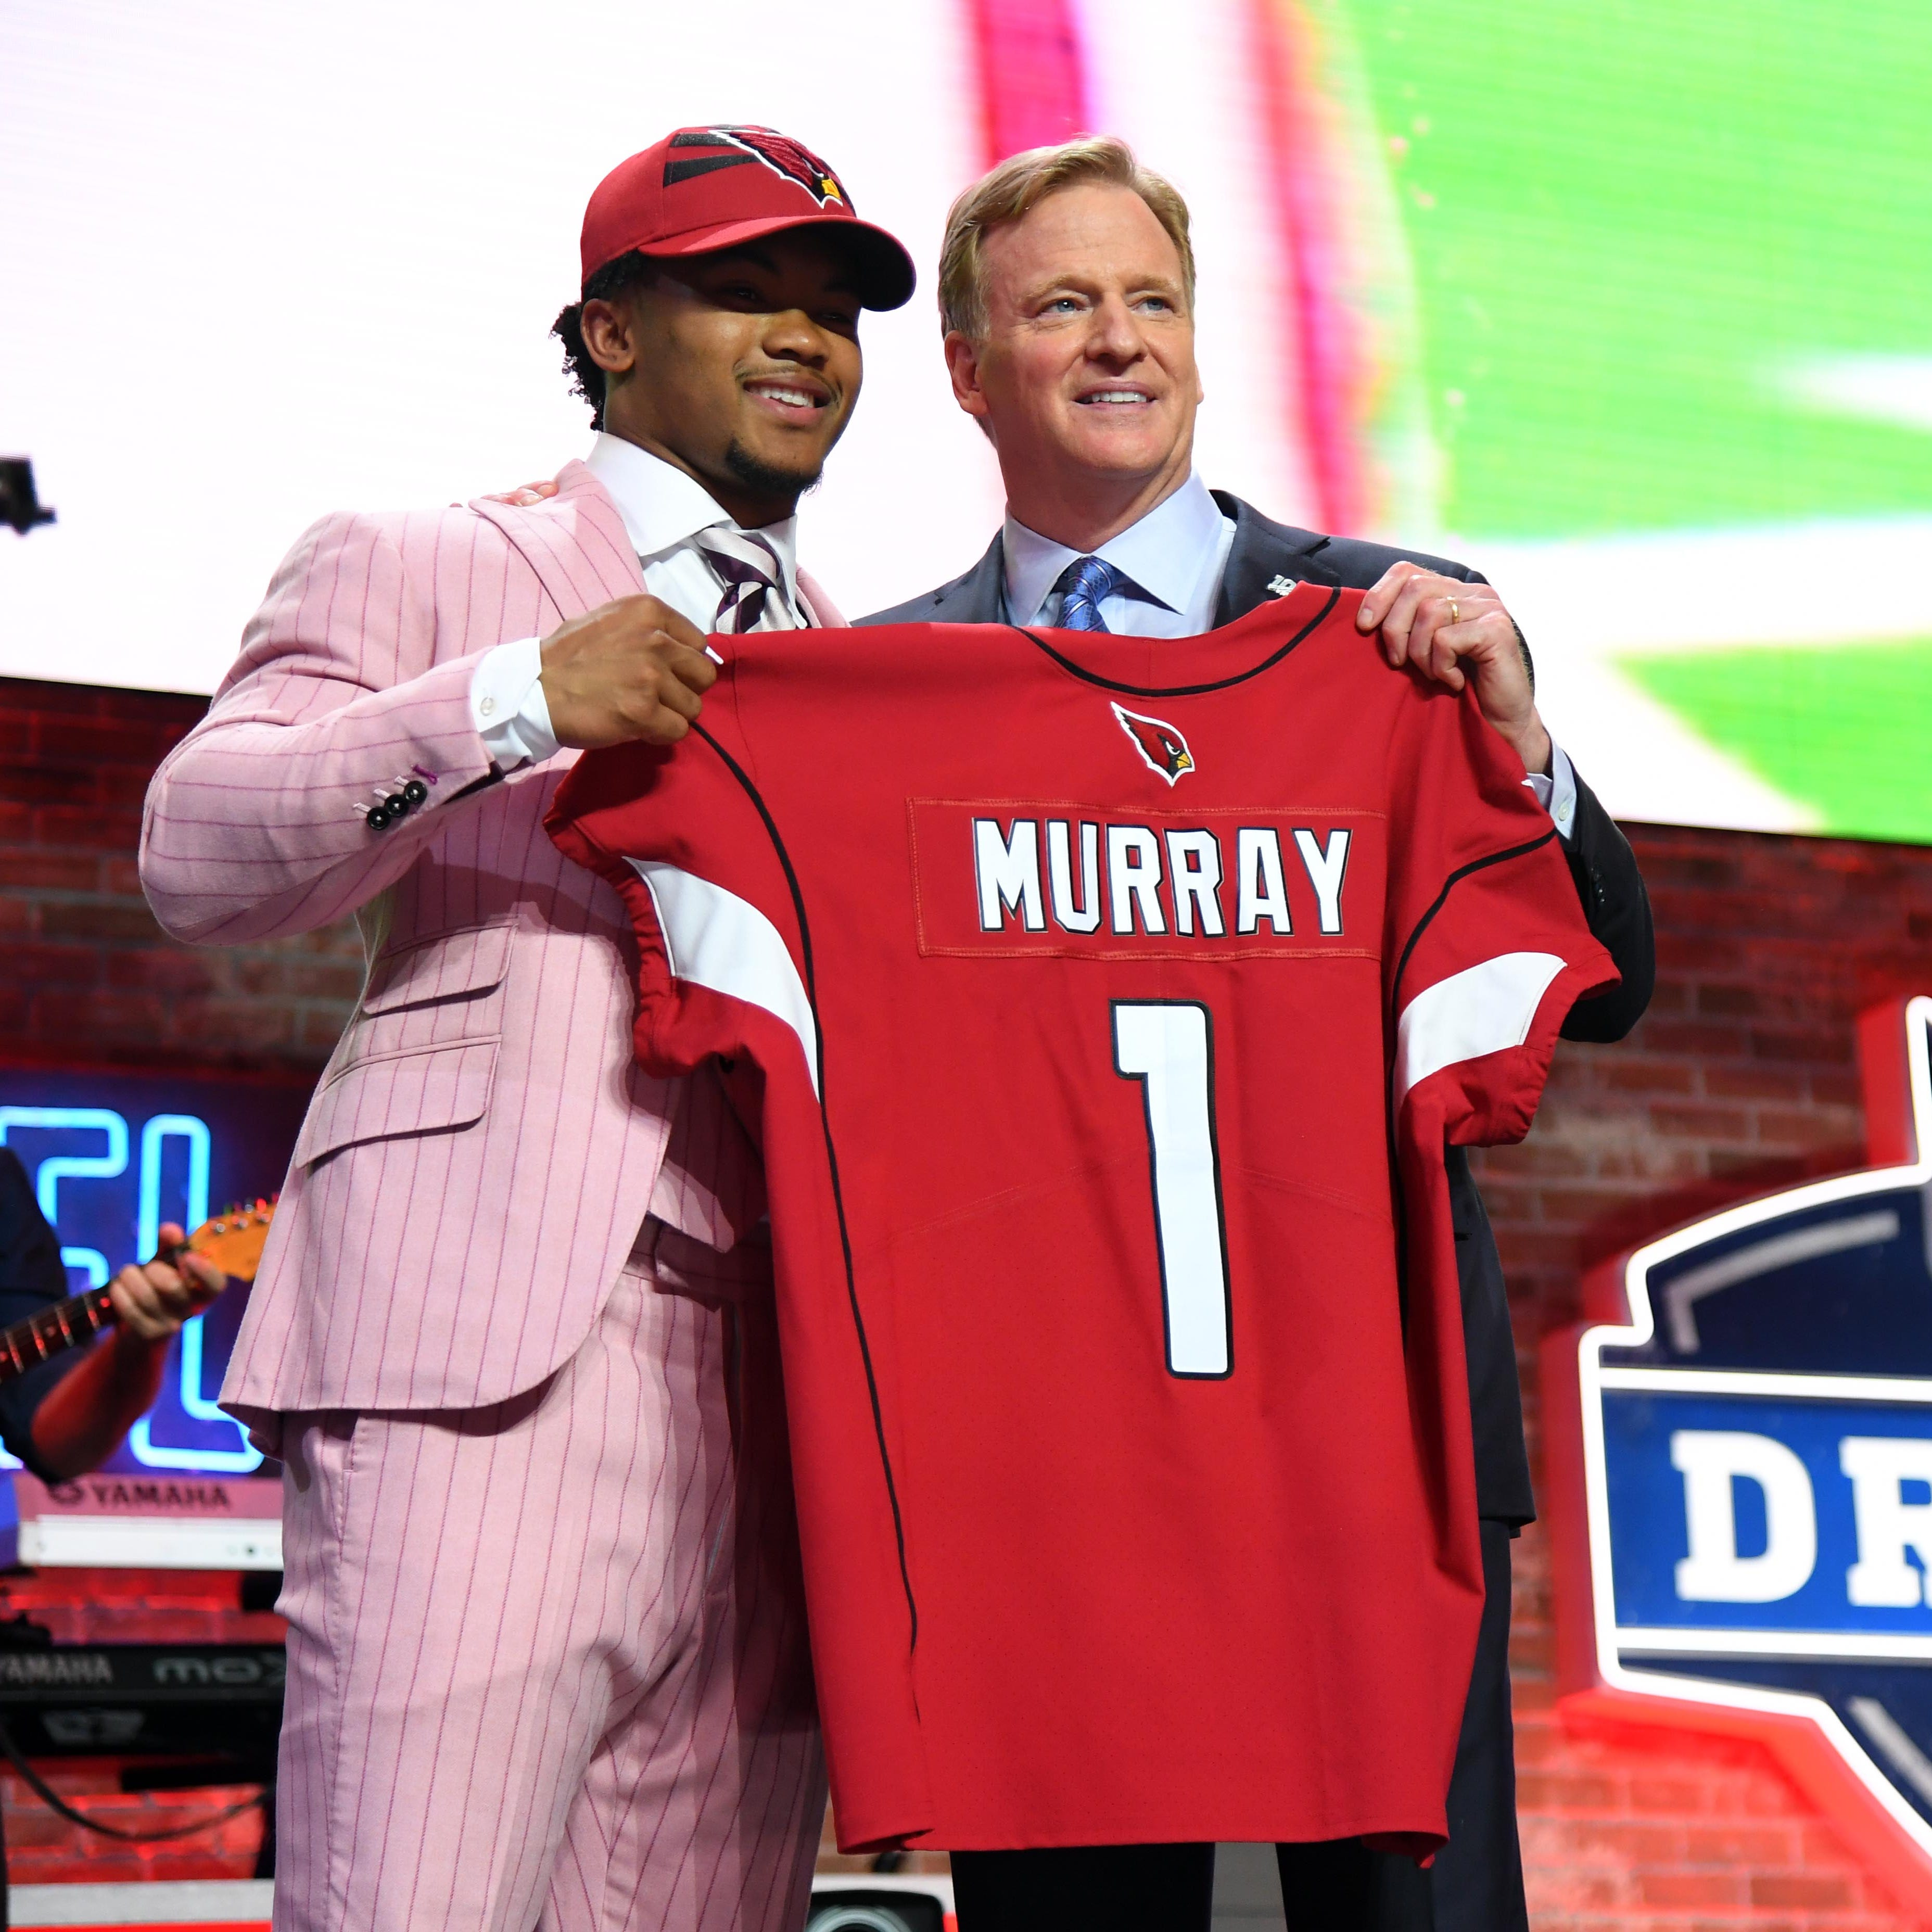 Arizona Cardinals select Kyler Murray No. 1 overall in the 2019 NFL draft